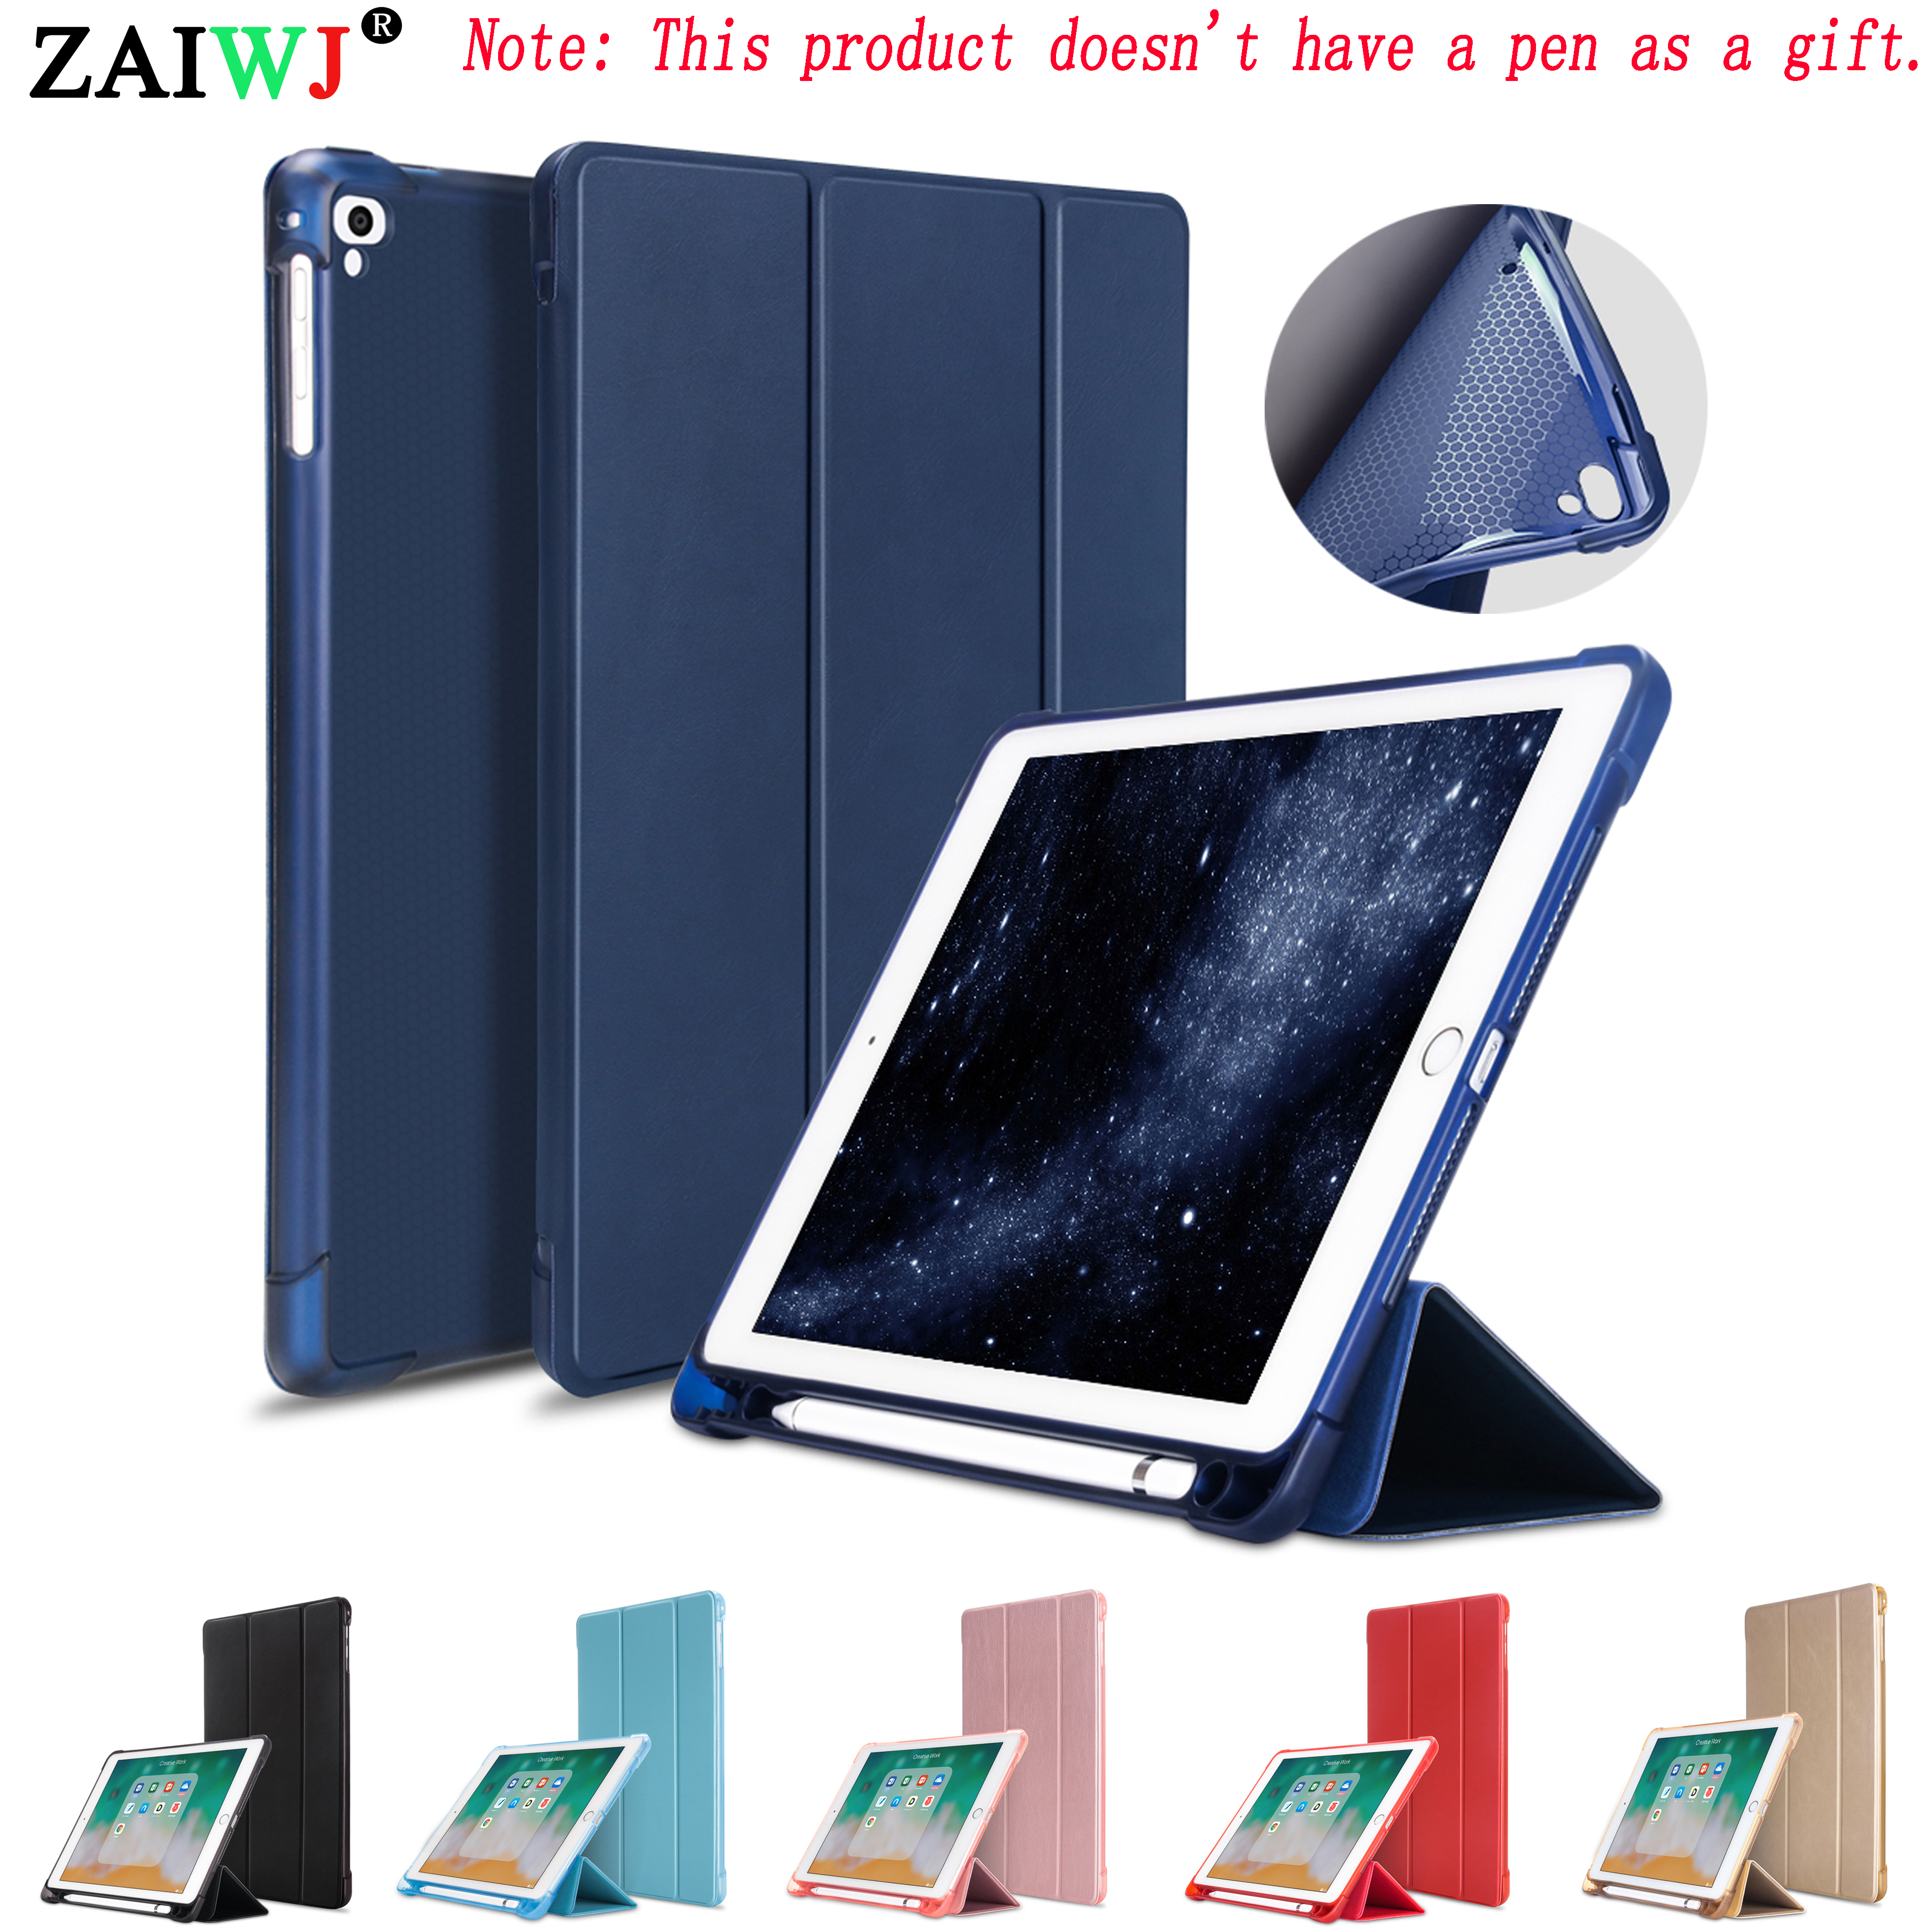 ZAIWJ Pencil Case with Stand for Apple <font><b>iPad</b></font> <font><b>9</b></font>.<font><b>7</b></font> inch (<font><b>2018</b></font> New) A1893 A1954, <font><b>Air</b></font> <font><b>1</b></font>/<font><b>2</b></font> Pro PU Leather Smart Cover Wake Auto Sleep image